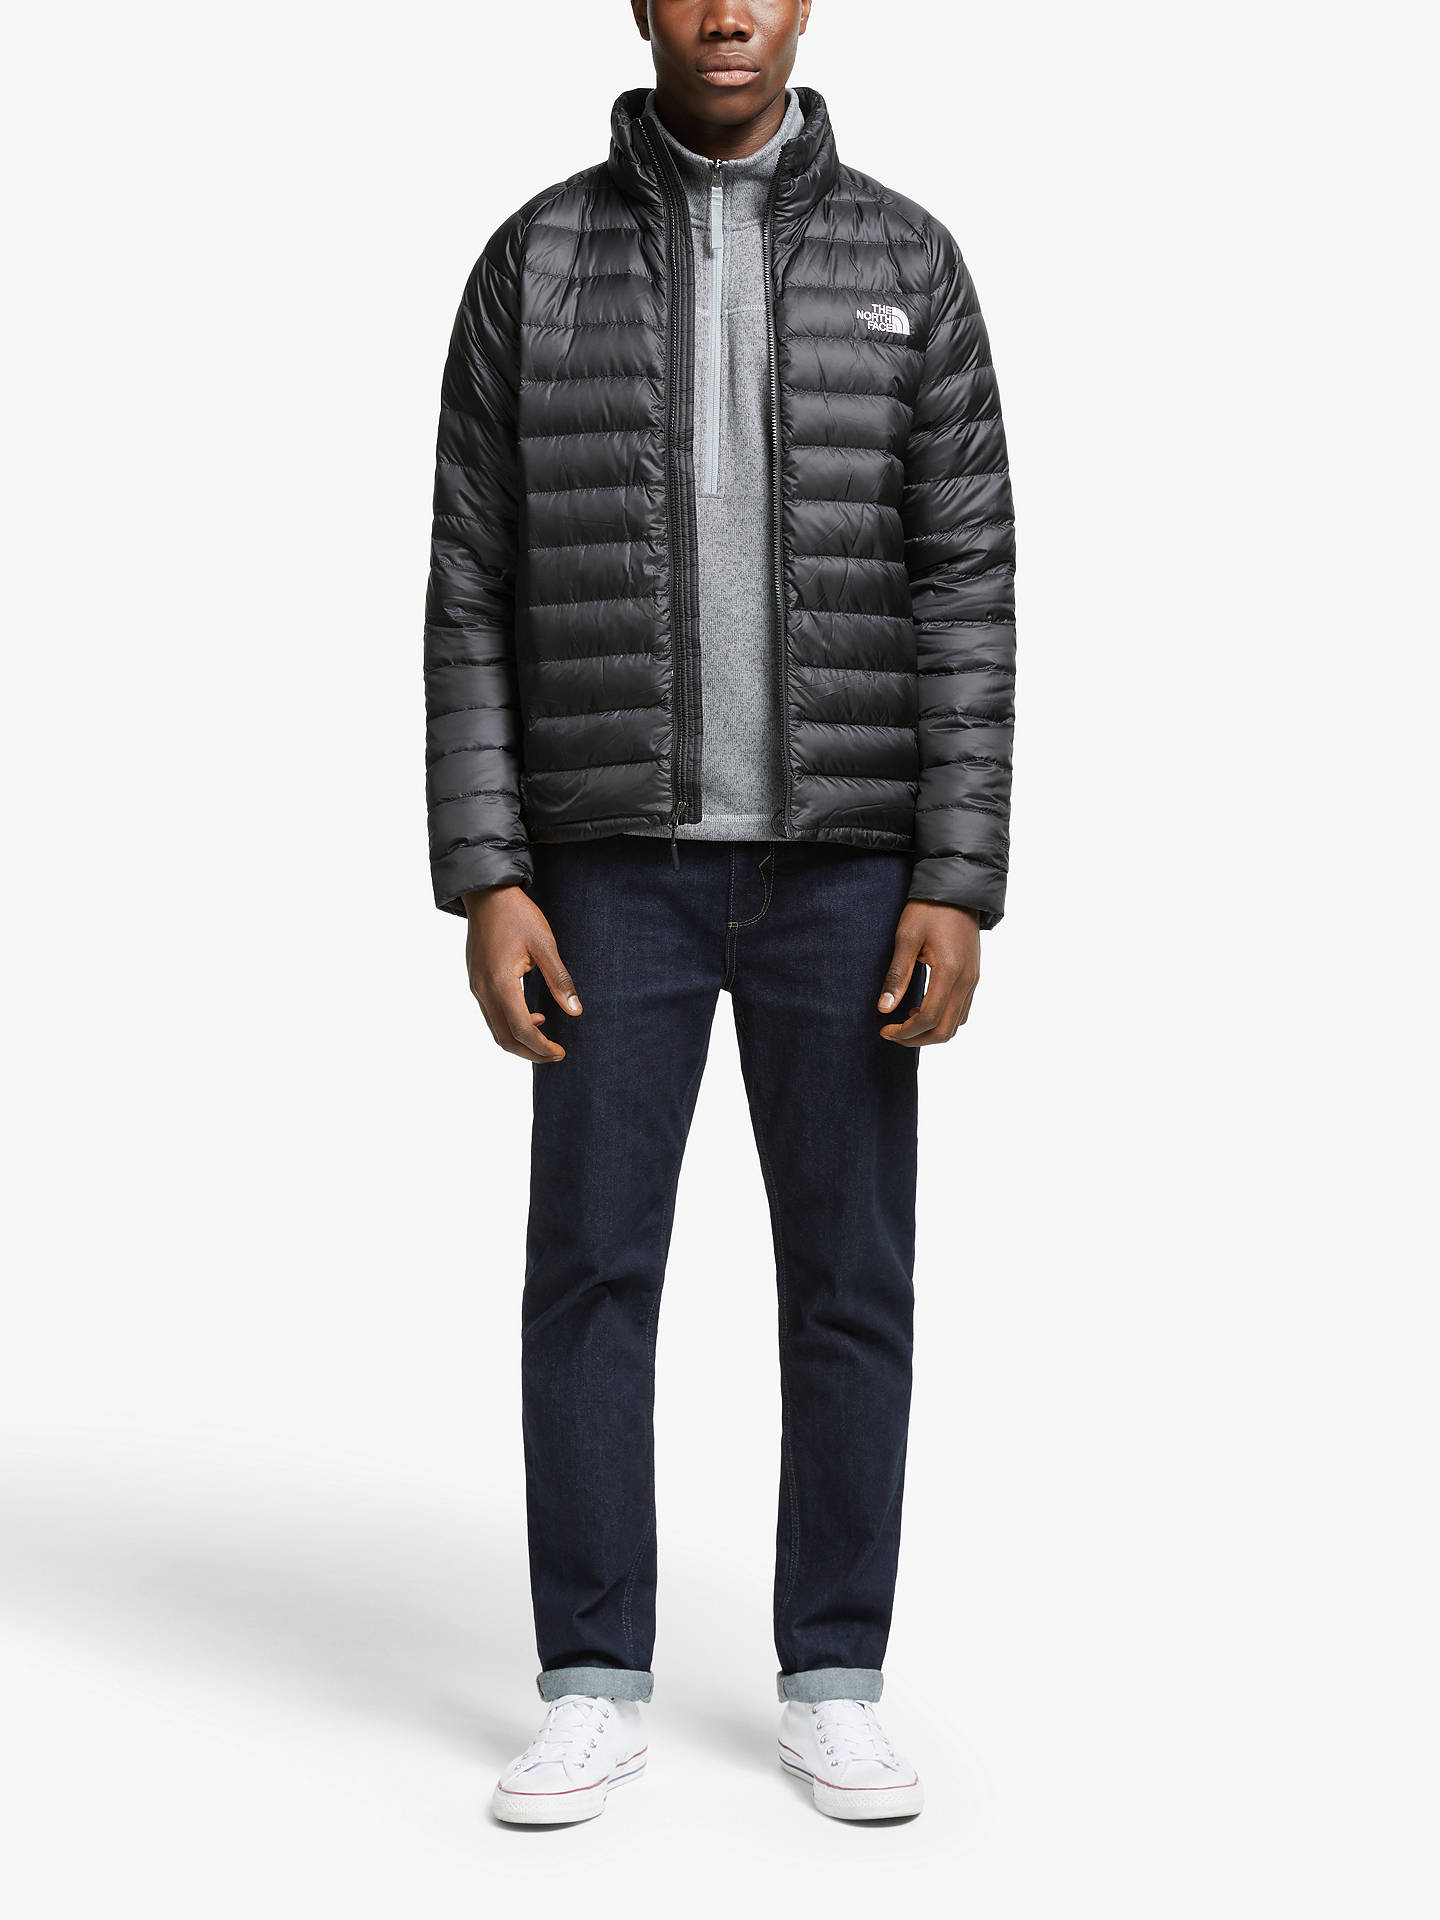 The North Face Men S Waterproof Trevail Jacket Black At John Lewis